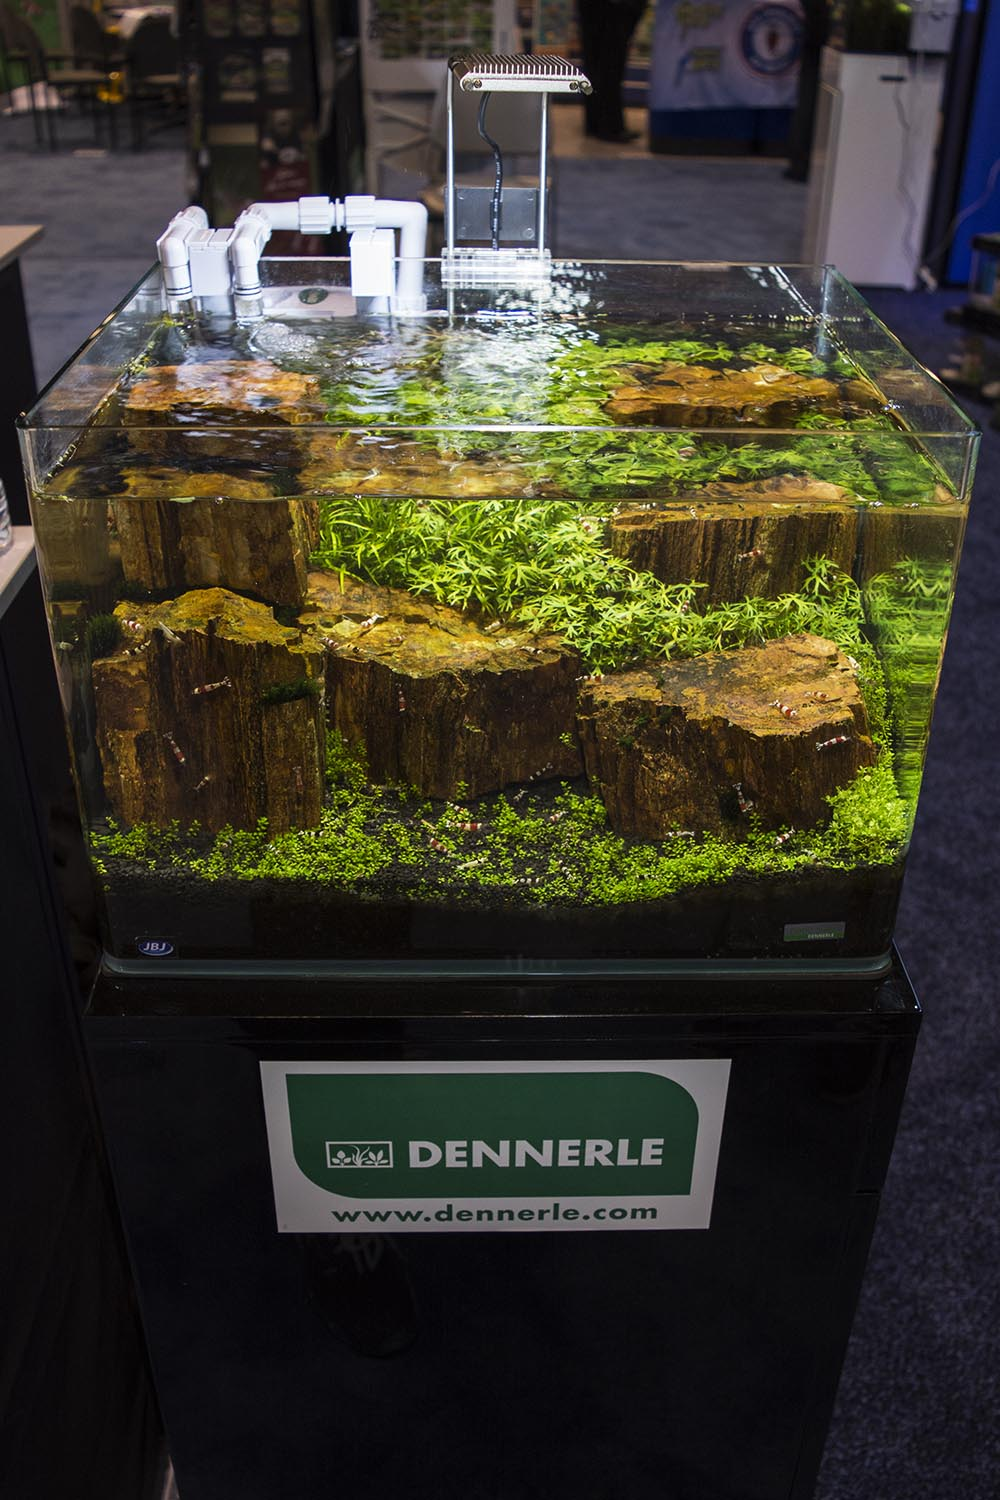 The JBJ booth featured Dennerle's 'Scaper' series tanks and accessories as well as Shrimp King foods.